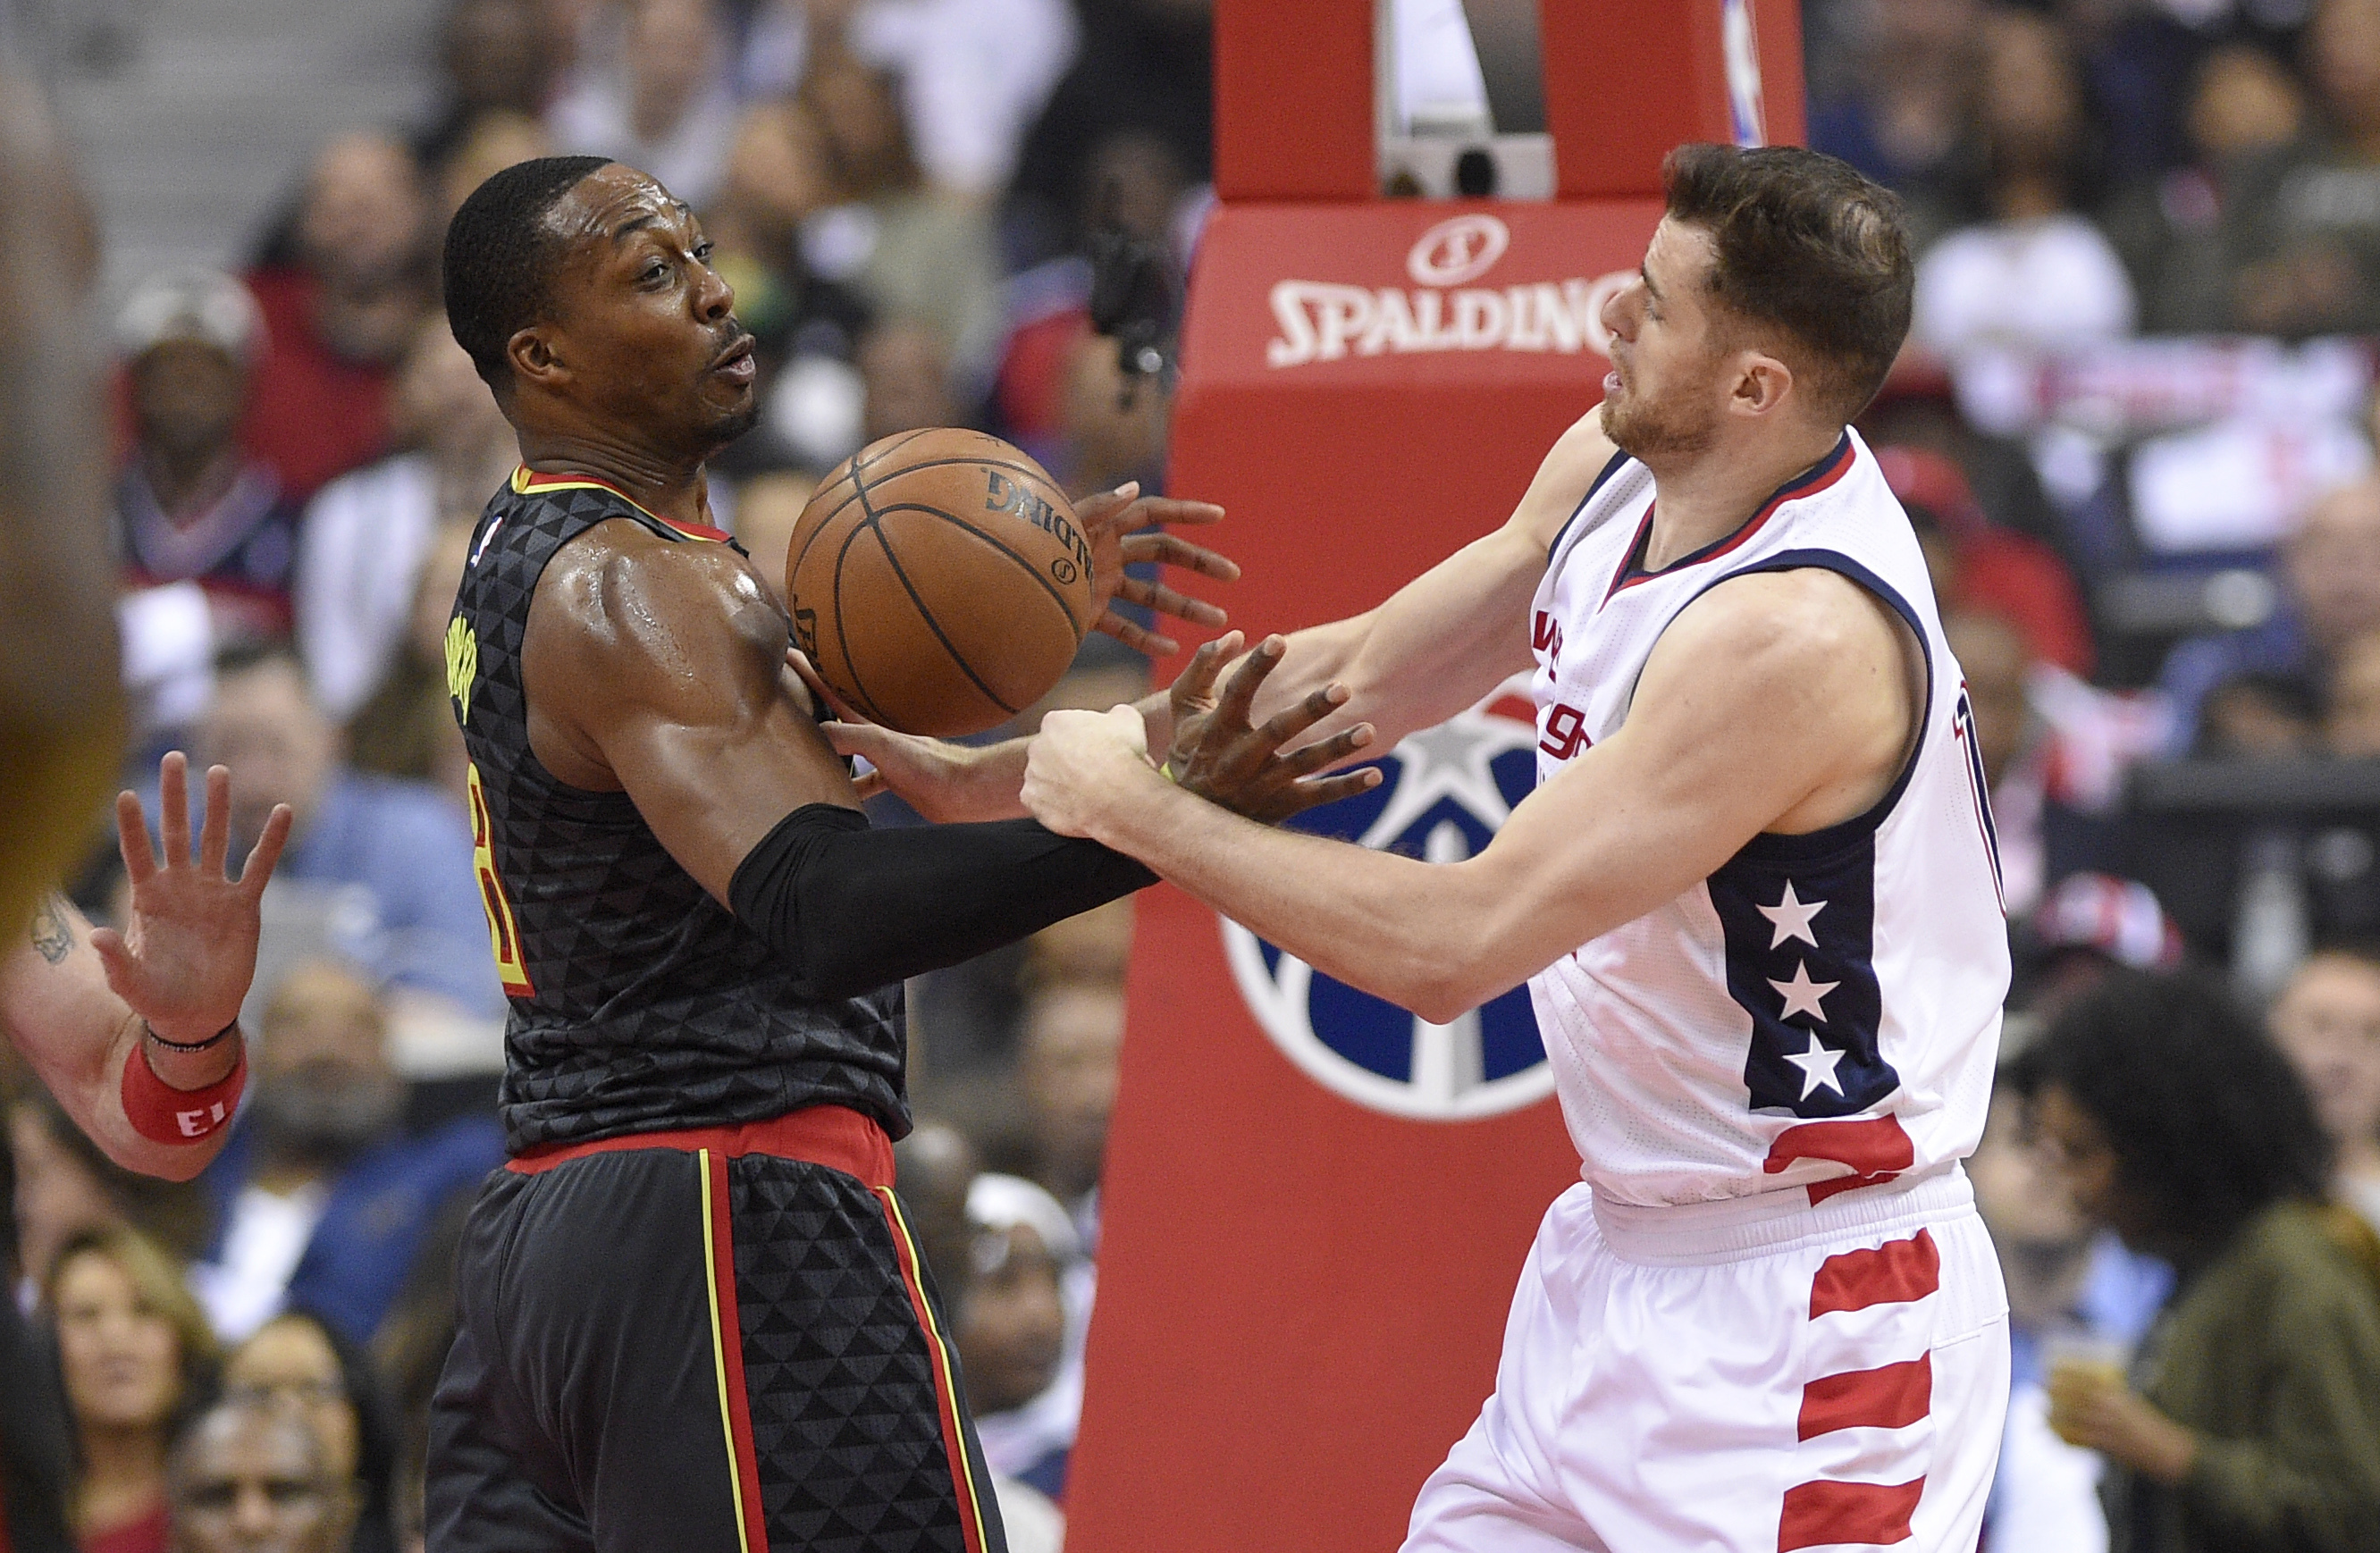 Washington Wizards forward Jason Smith, right, and Atlanta Hawks center Dwight Howard, left, reach for the ball during Game 2 of their first-round NBA basketball playoff series, Wednesday, April 19, in Washington. (AP Photo/Nick Wass)